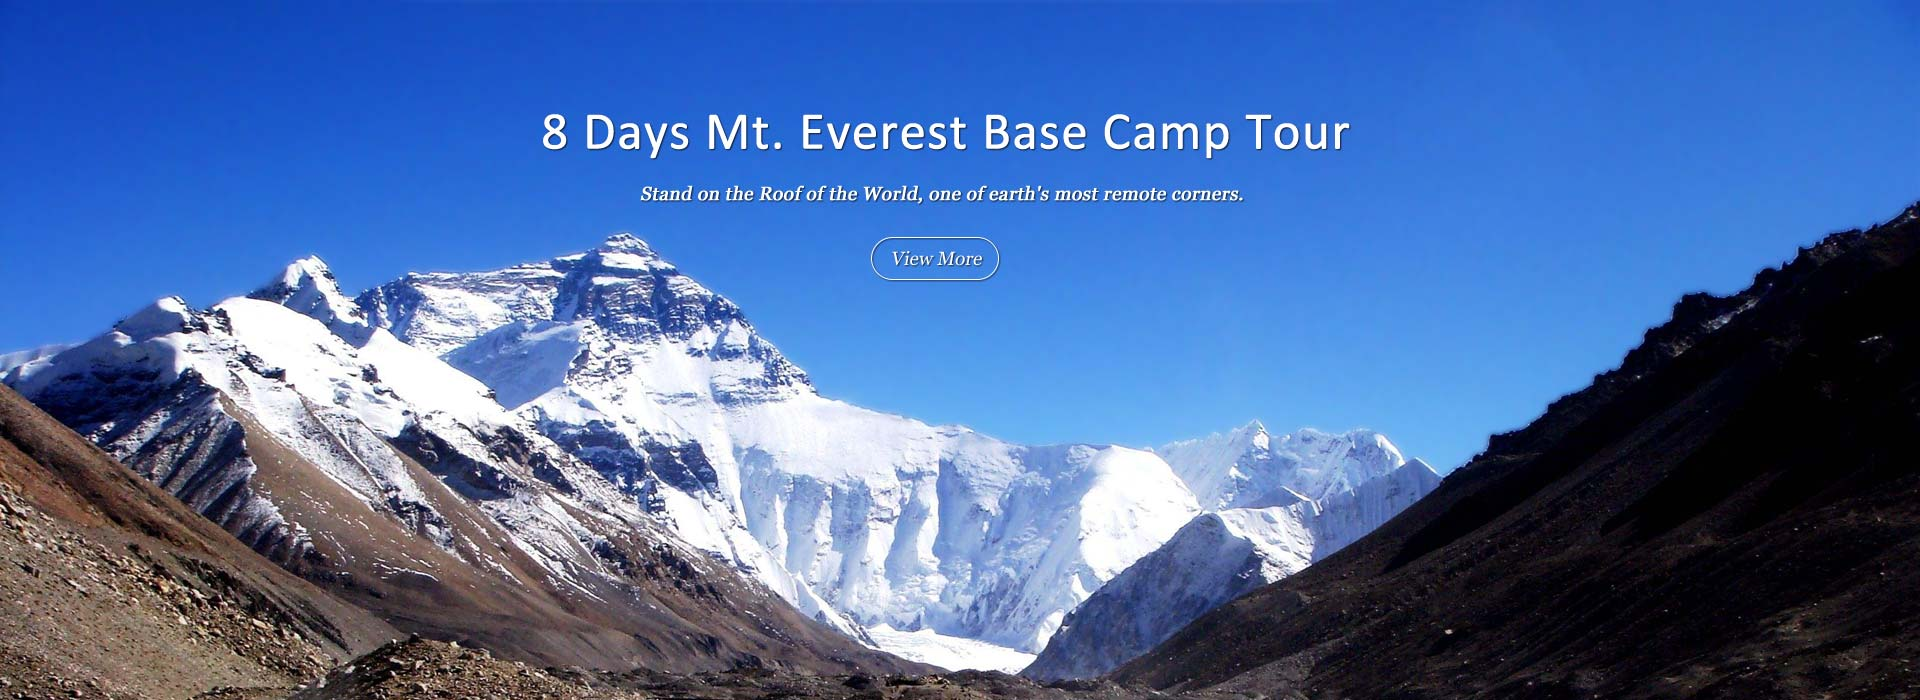 8 Days Everest Base Camp Tour